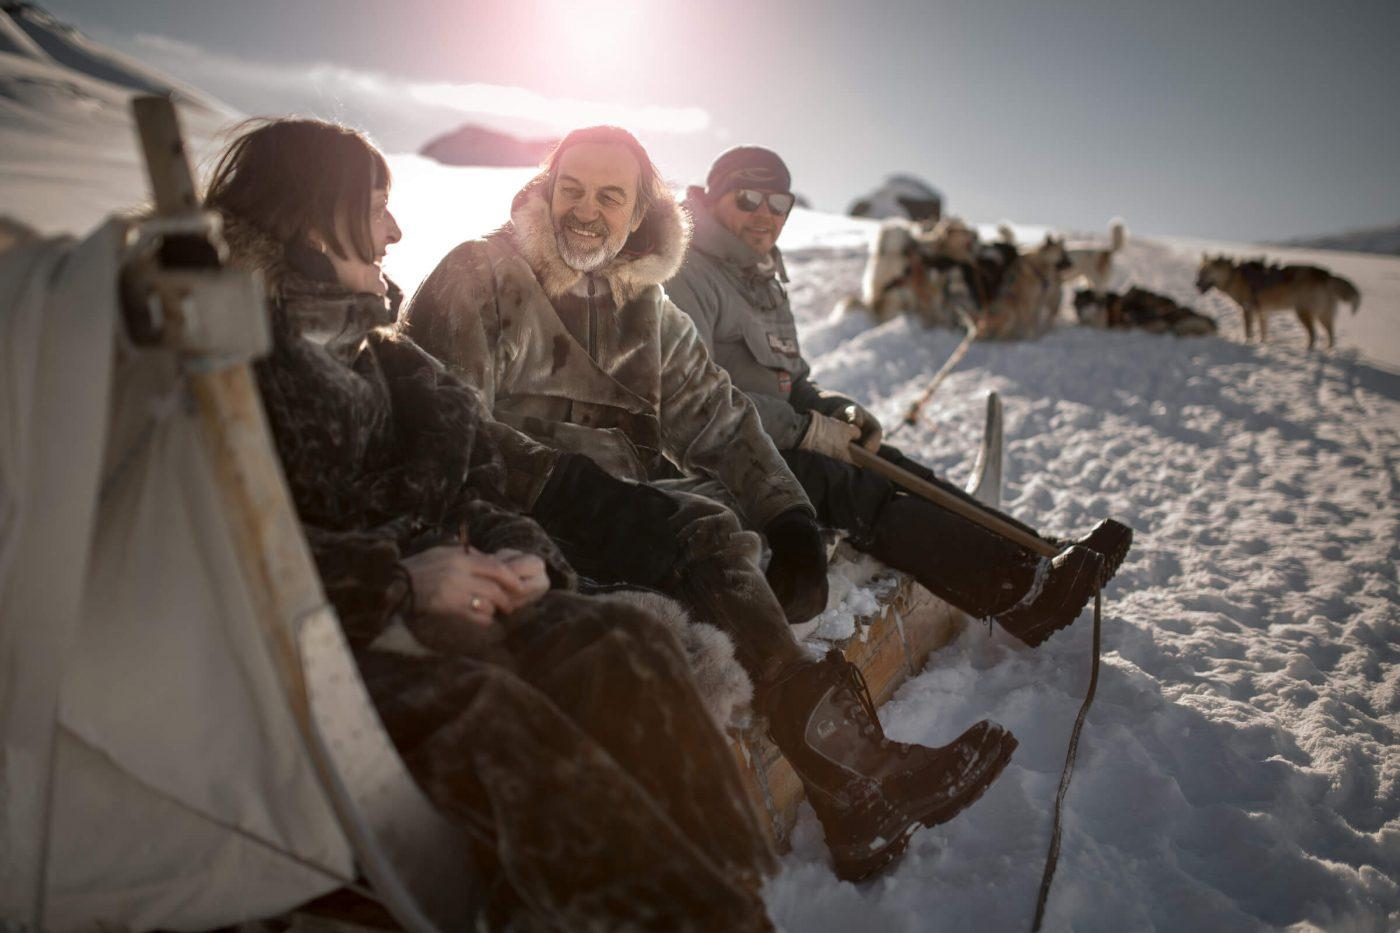 Passengers and driver on a dog sled near Sisimiut in Greenland